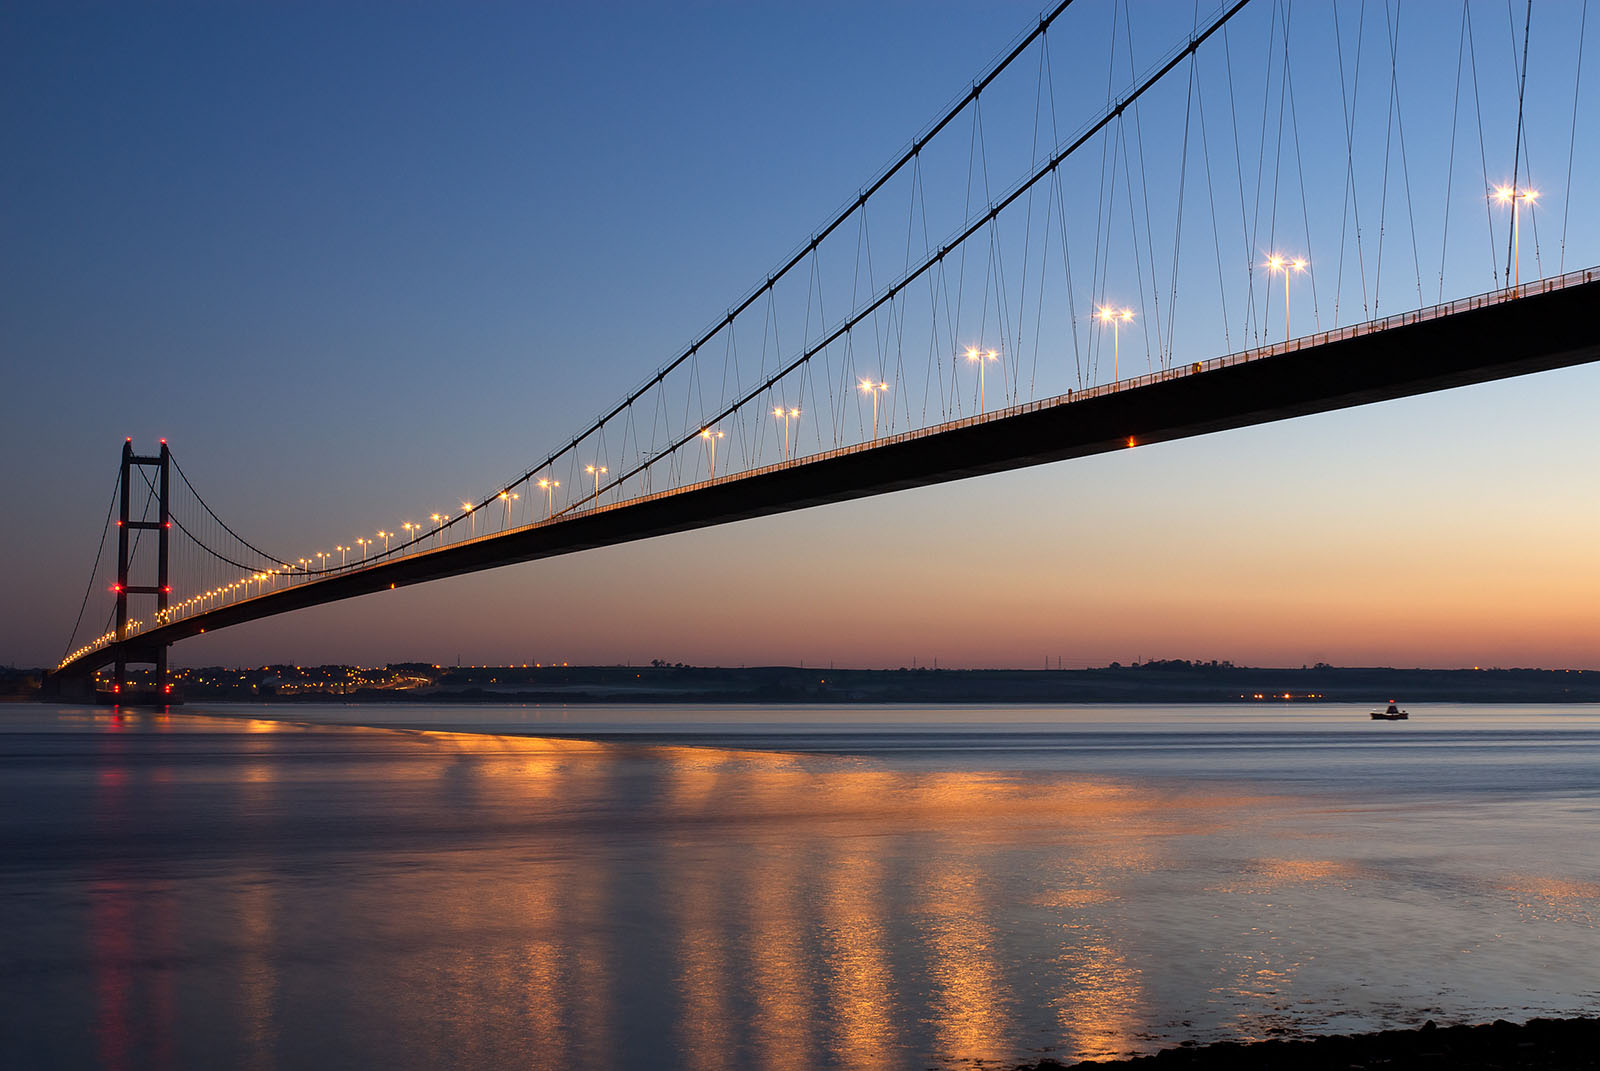 Humber Bridge at Dusk